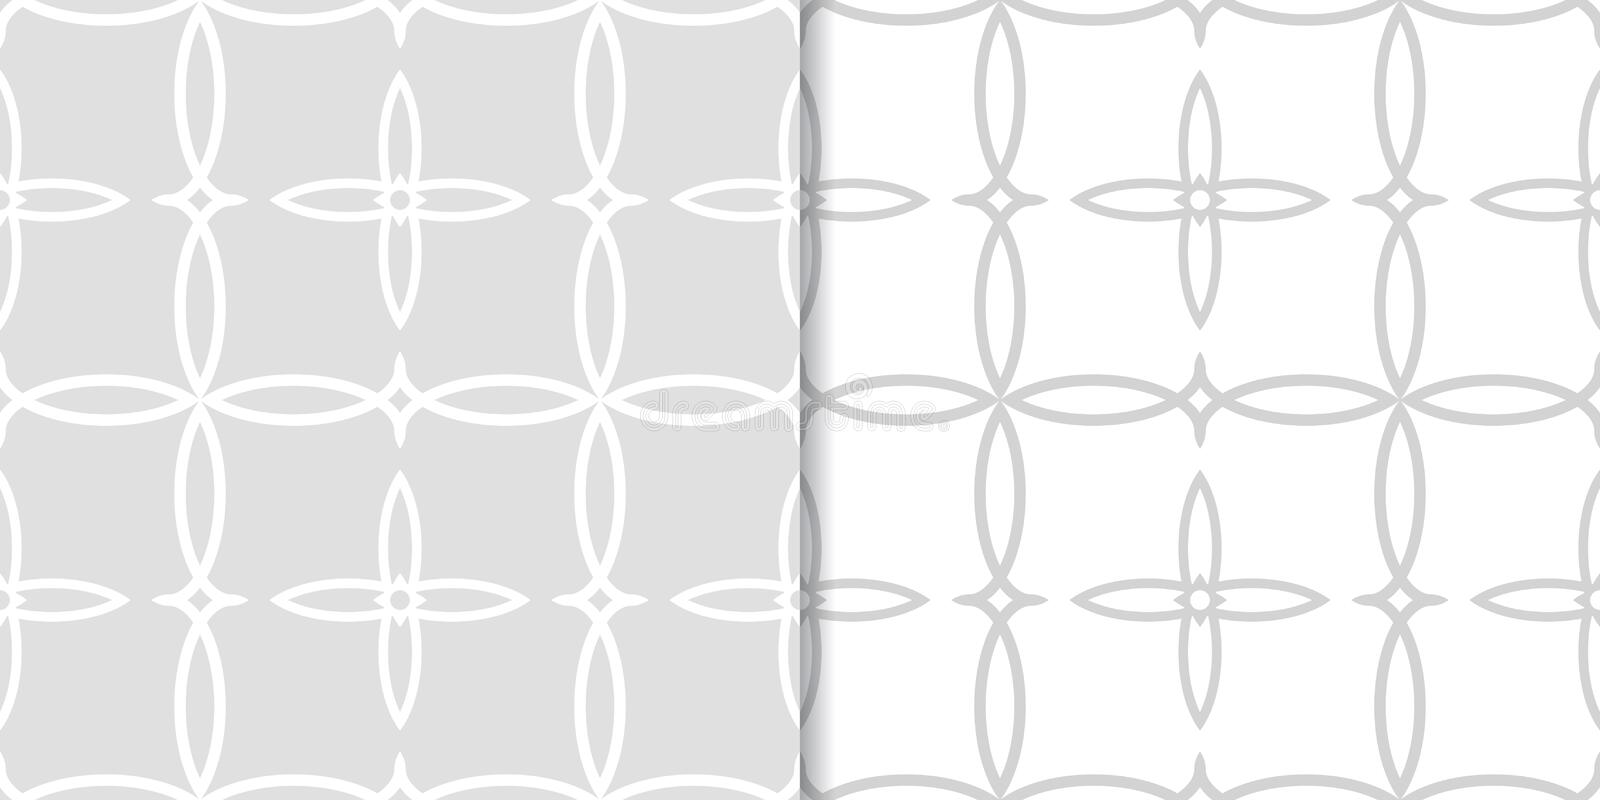 Geometric seamless background. Gray wallpaper with floral elements royalty free illustration